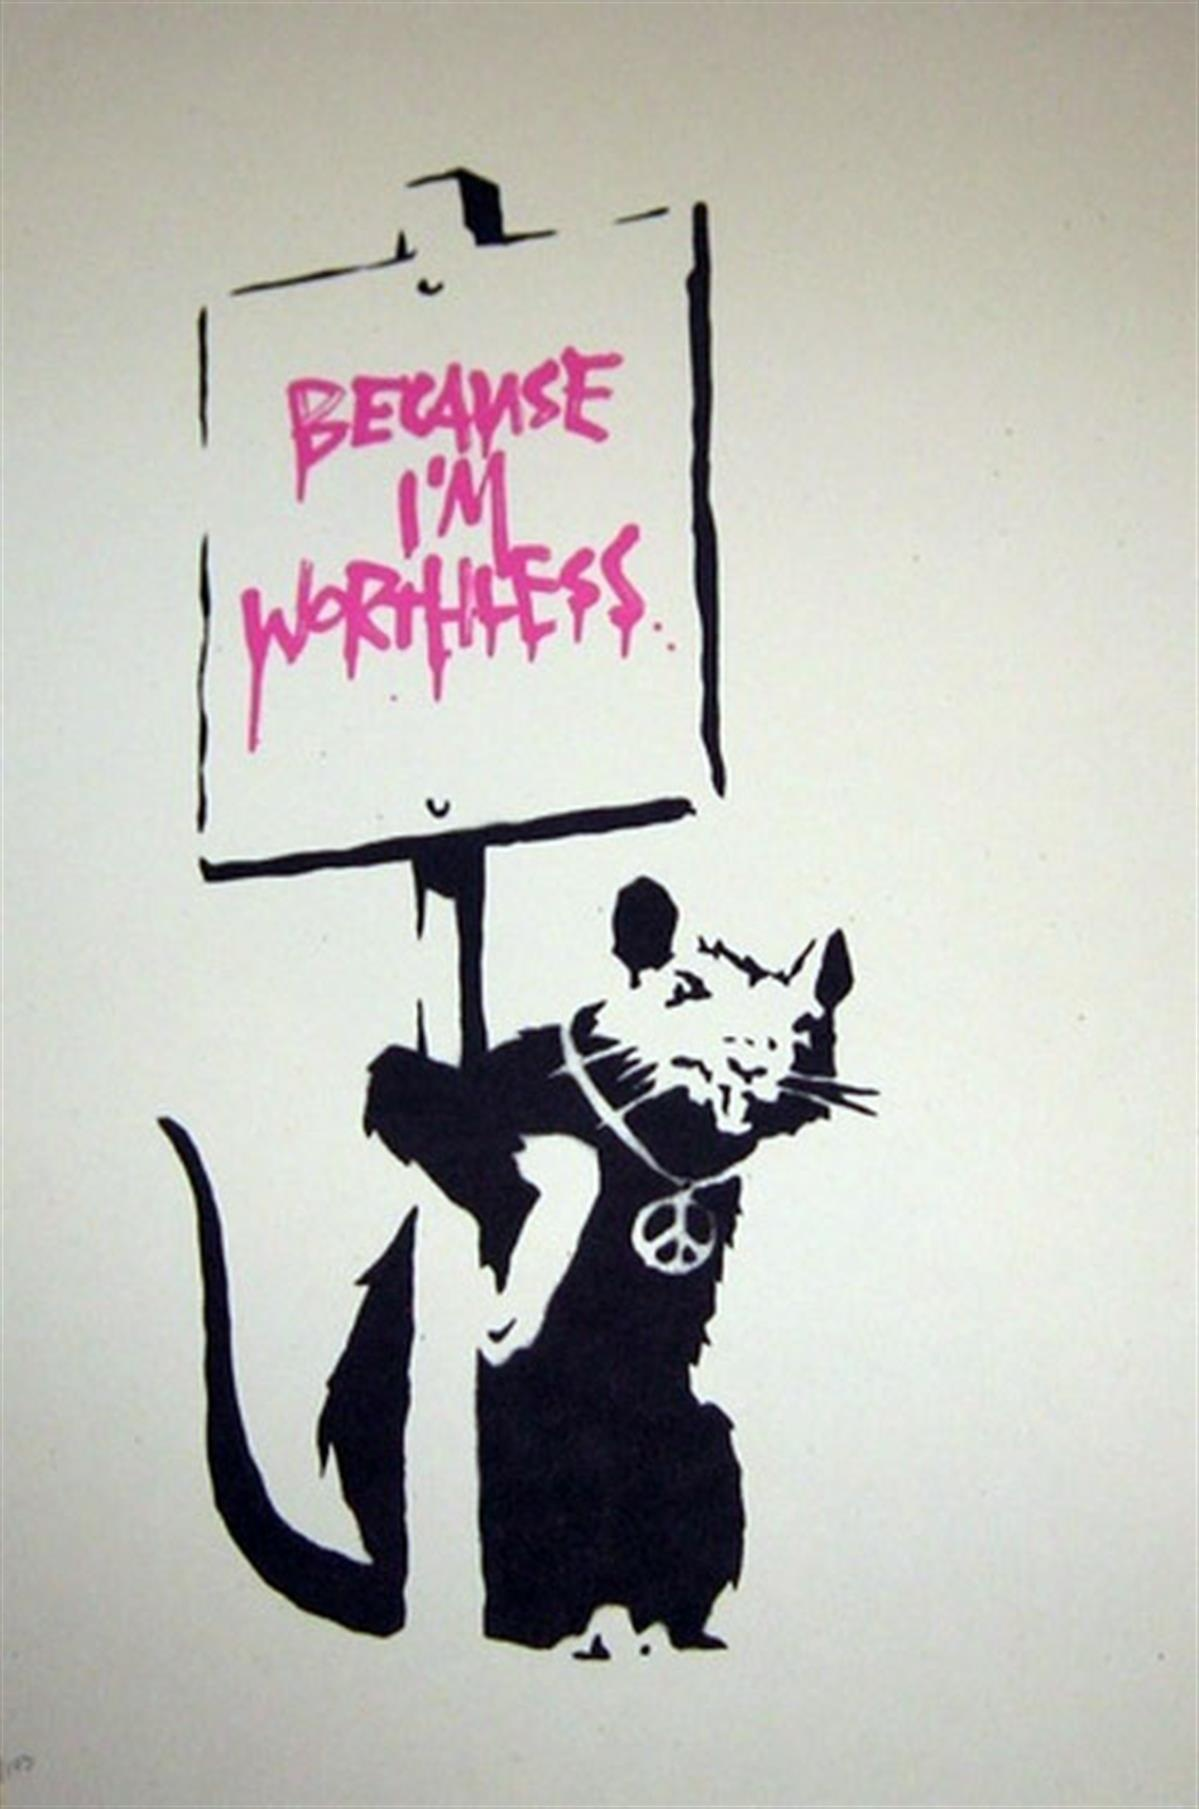 Banksy's 'Because I'm Worthless'